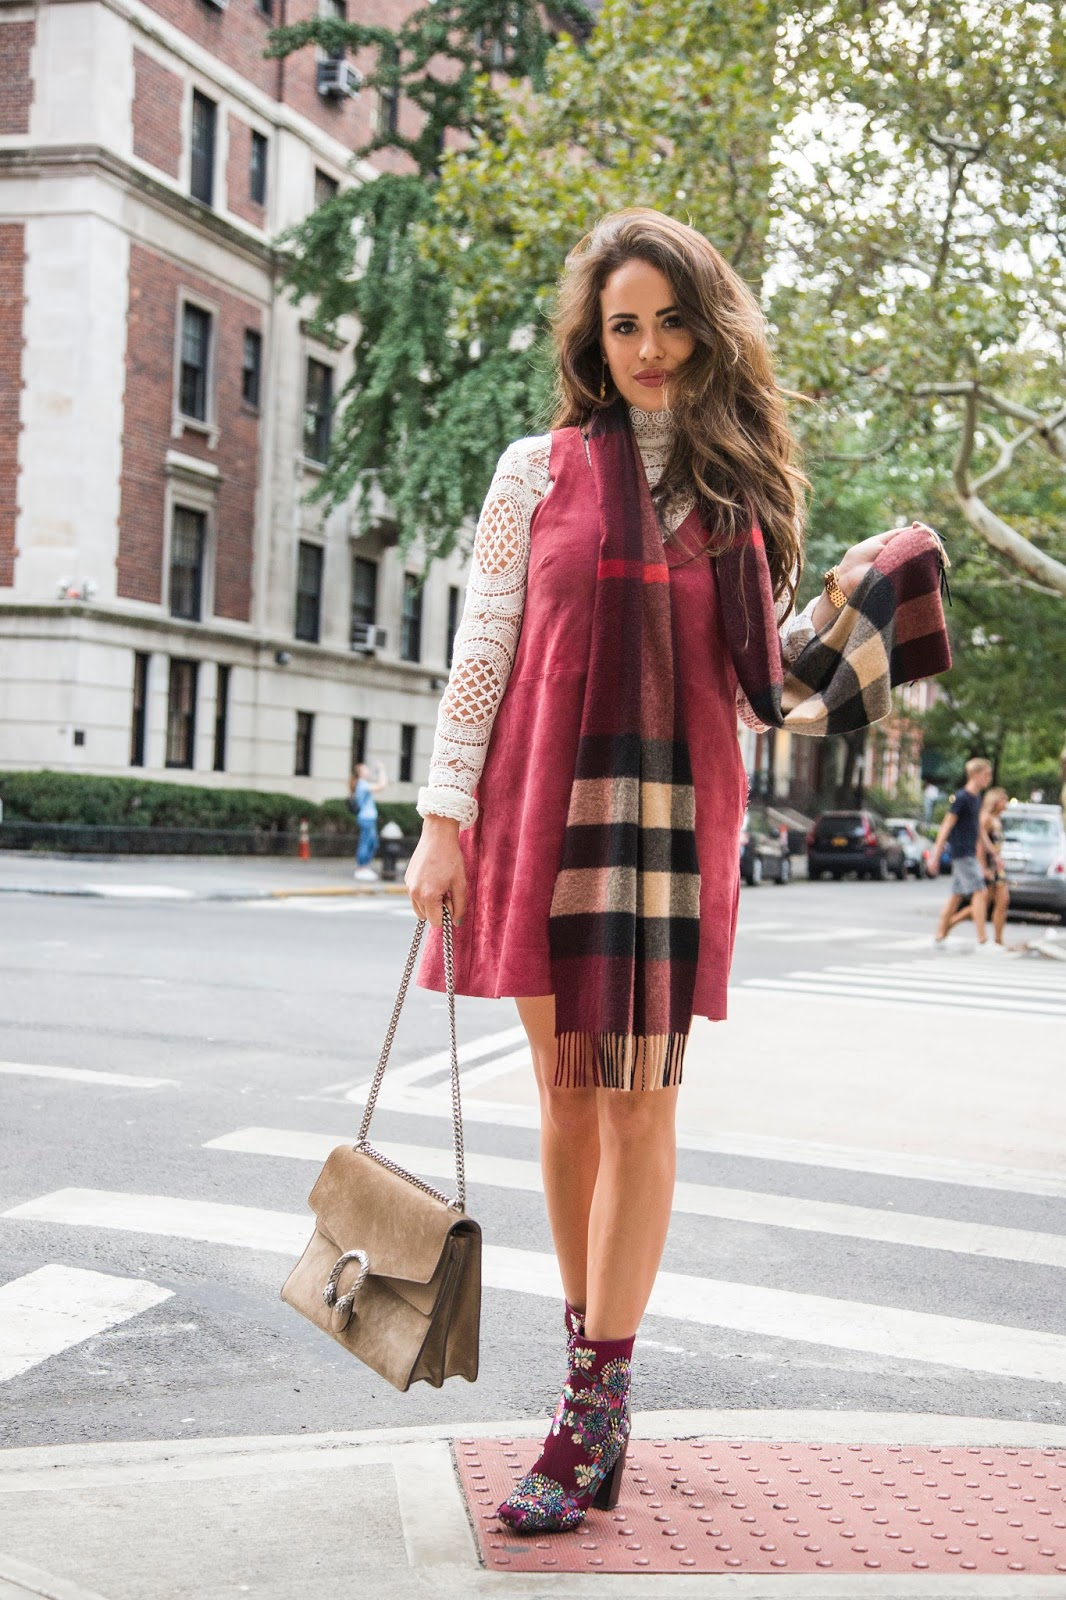 Suede dress by free people, nyc fall fashion, how to dress for nyc in the fall, nyc top bloggers, nyc blogger, cute outfits for fall, cute looks for fall, how to dress cute in cold weather, fall fashion, blogger fall fashion, blogger style, nyc fashion, suede dress, gucci dionysus, burberry scarf, how to style a burberry scarf, creative fall looks, white lace top, anthropologie white lace top, fall in nyc, cute fall fashion ideas, nyc fashion blogger, elle harper, elle harper blog, elle harper in nyc